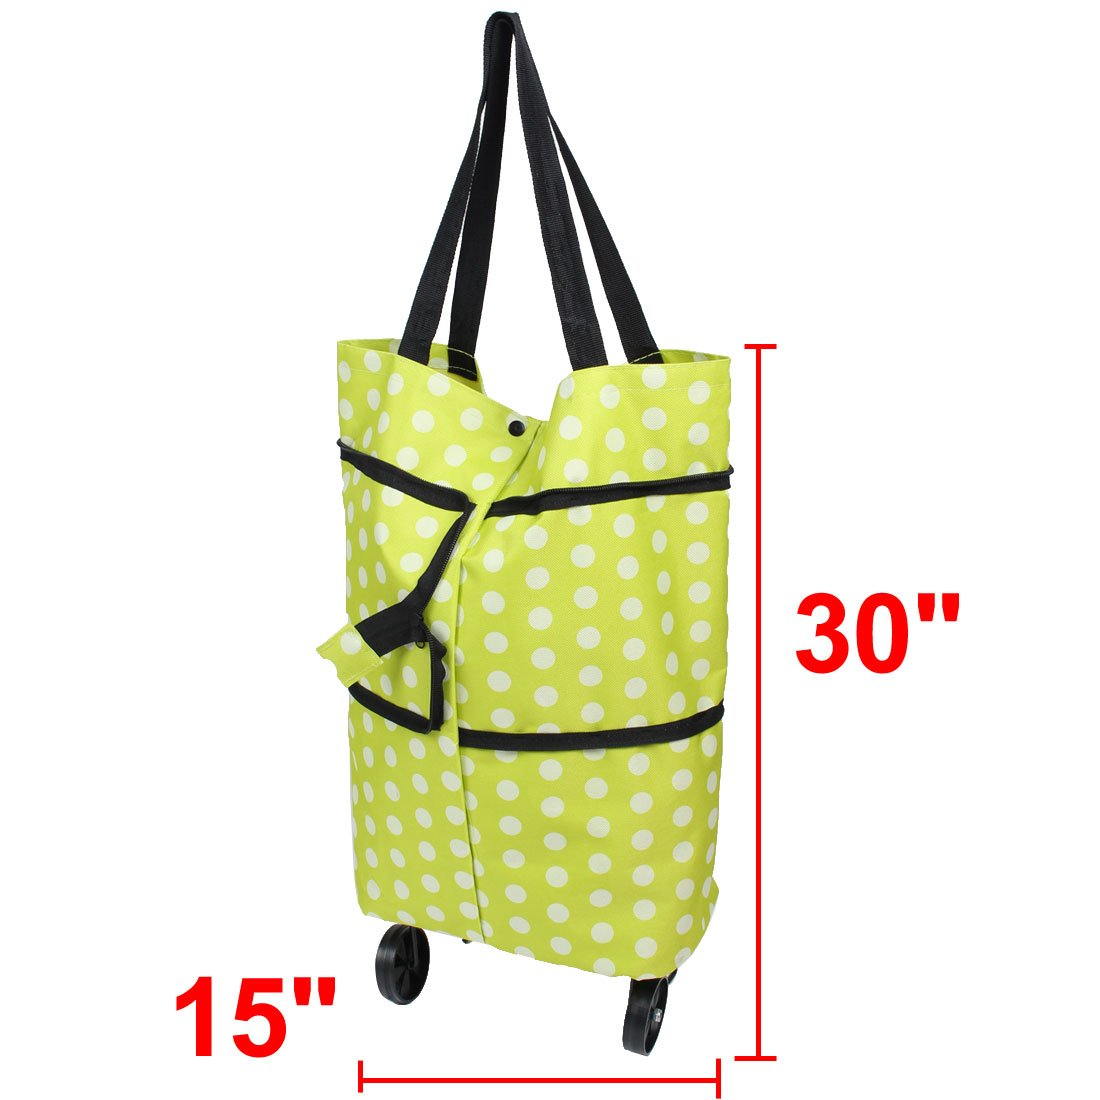 uxcellPolyester Dot Pattern Household Reusable Folding Shopping Tote Bag Trolley